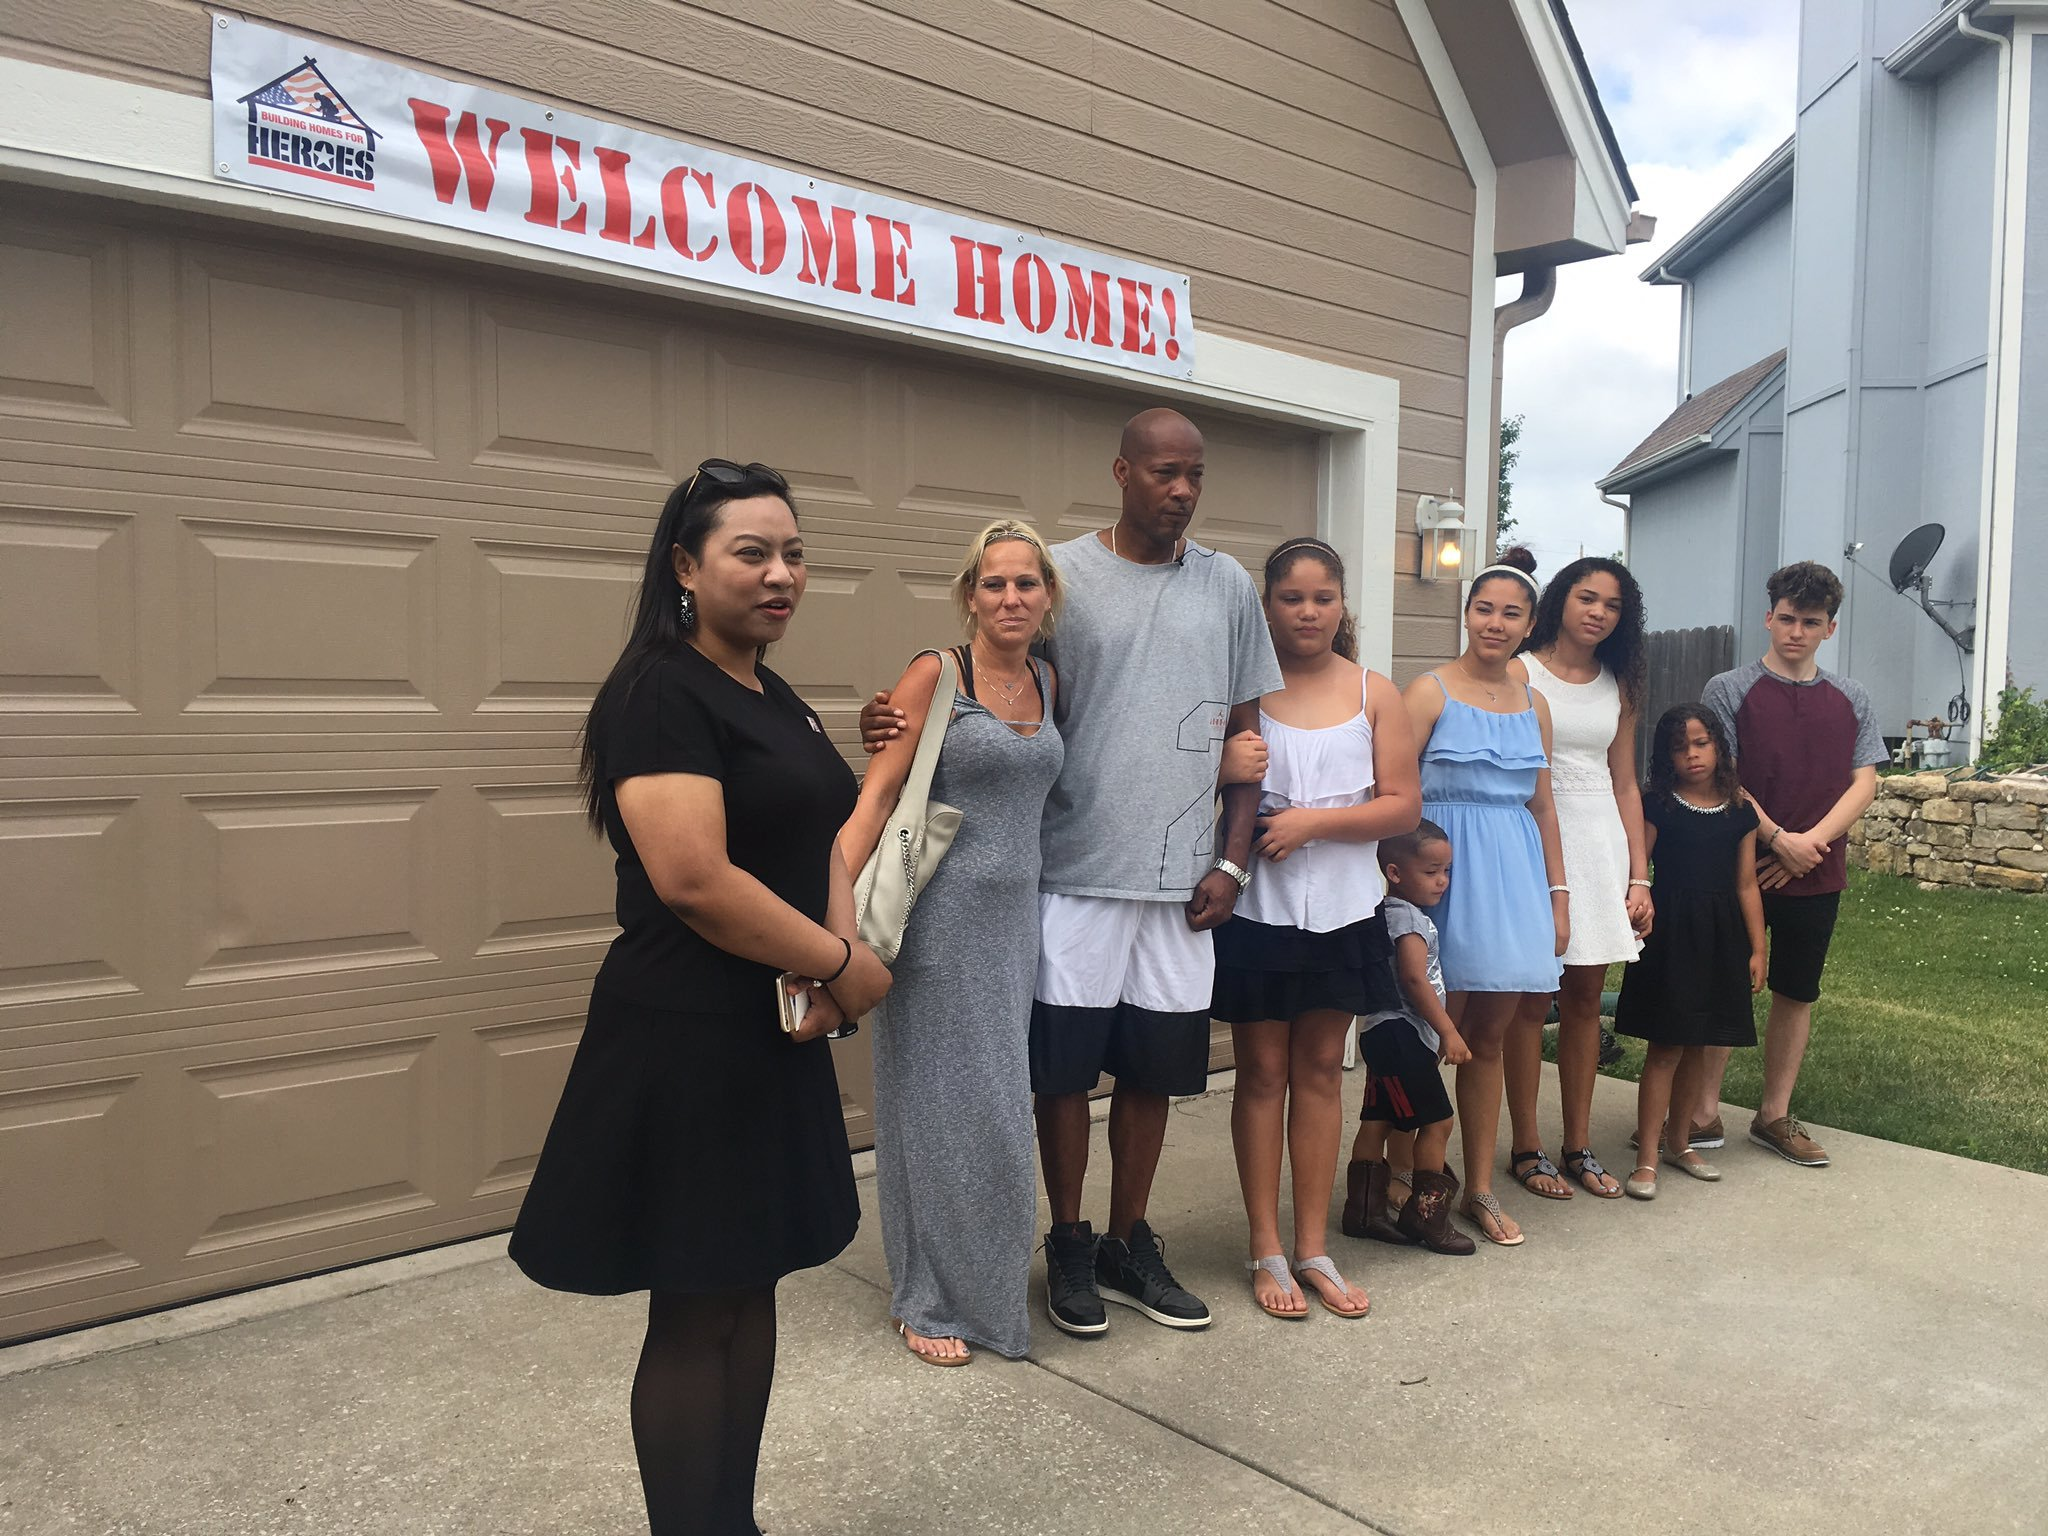 Army Sergeant Oscar Smith and his family are now calling Lee's Summit home after receiving a gift of a lifetime - amortgage-free home in honor of his service.(KCTV5)